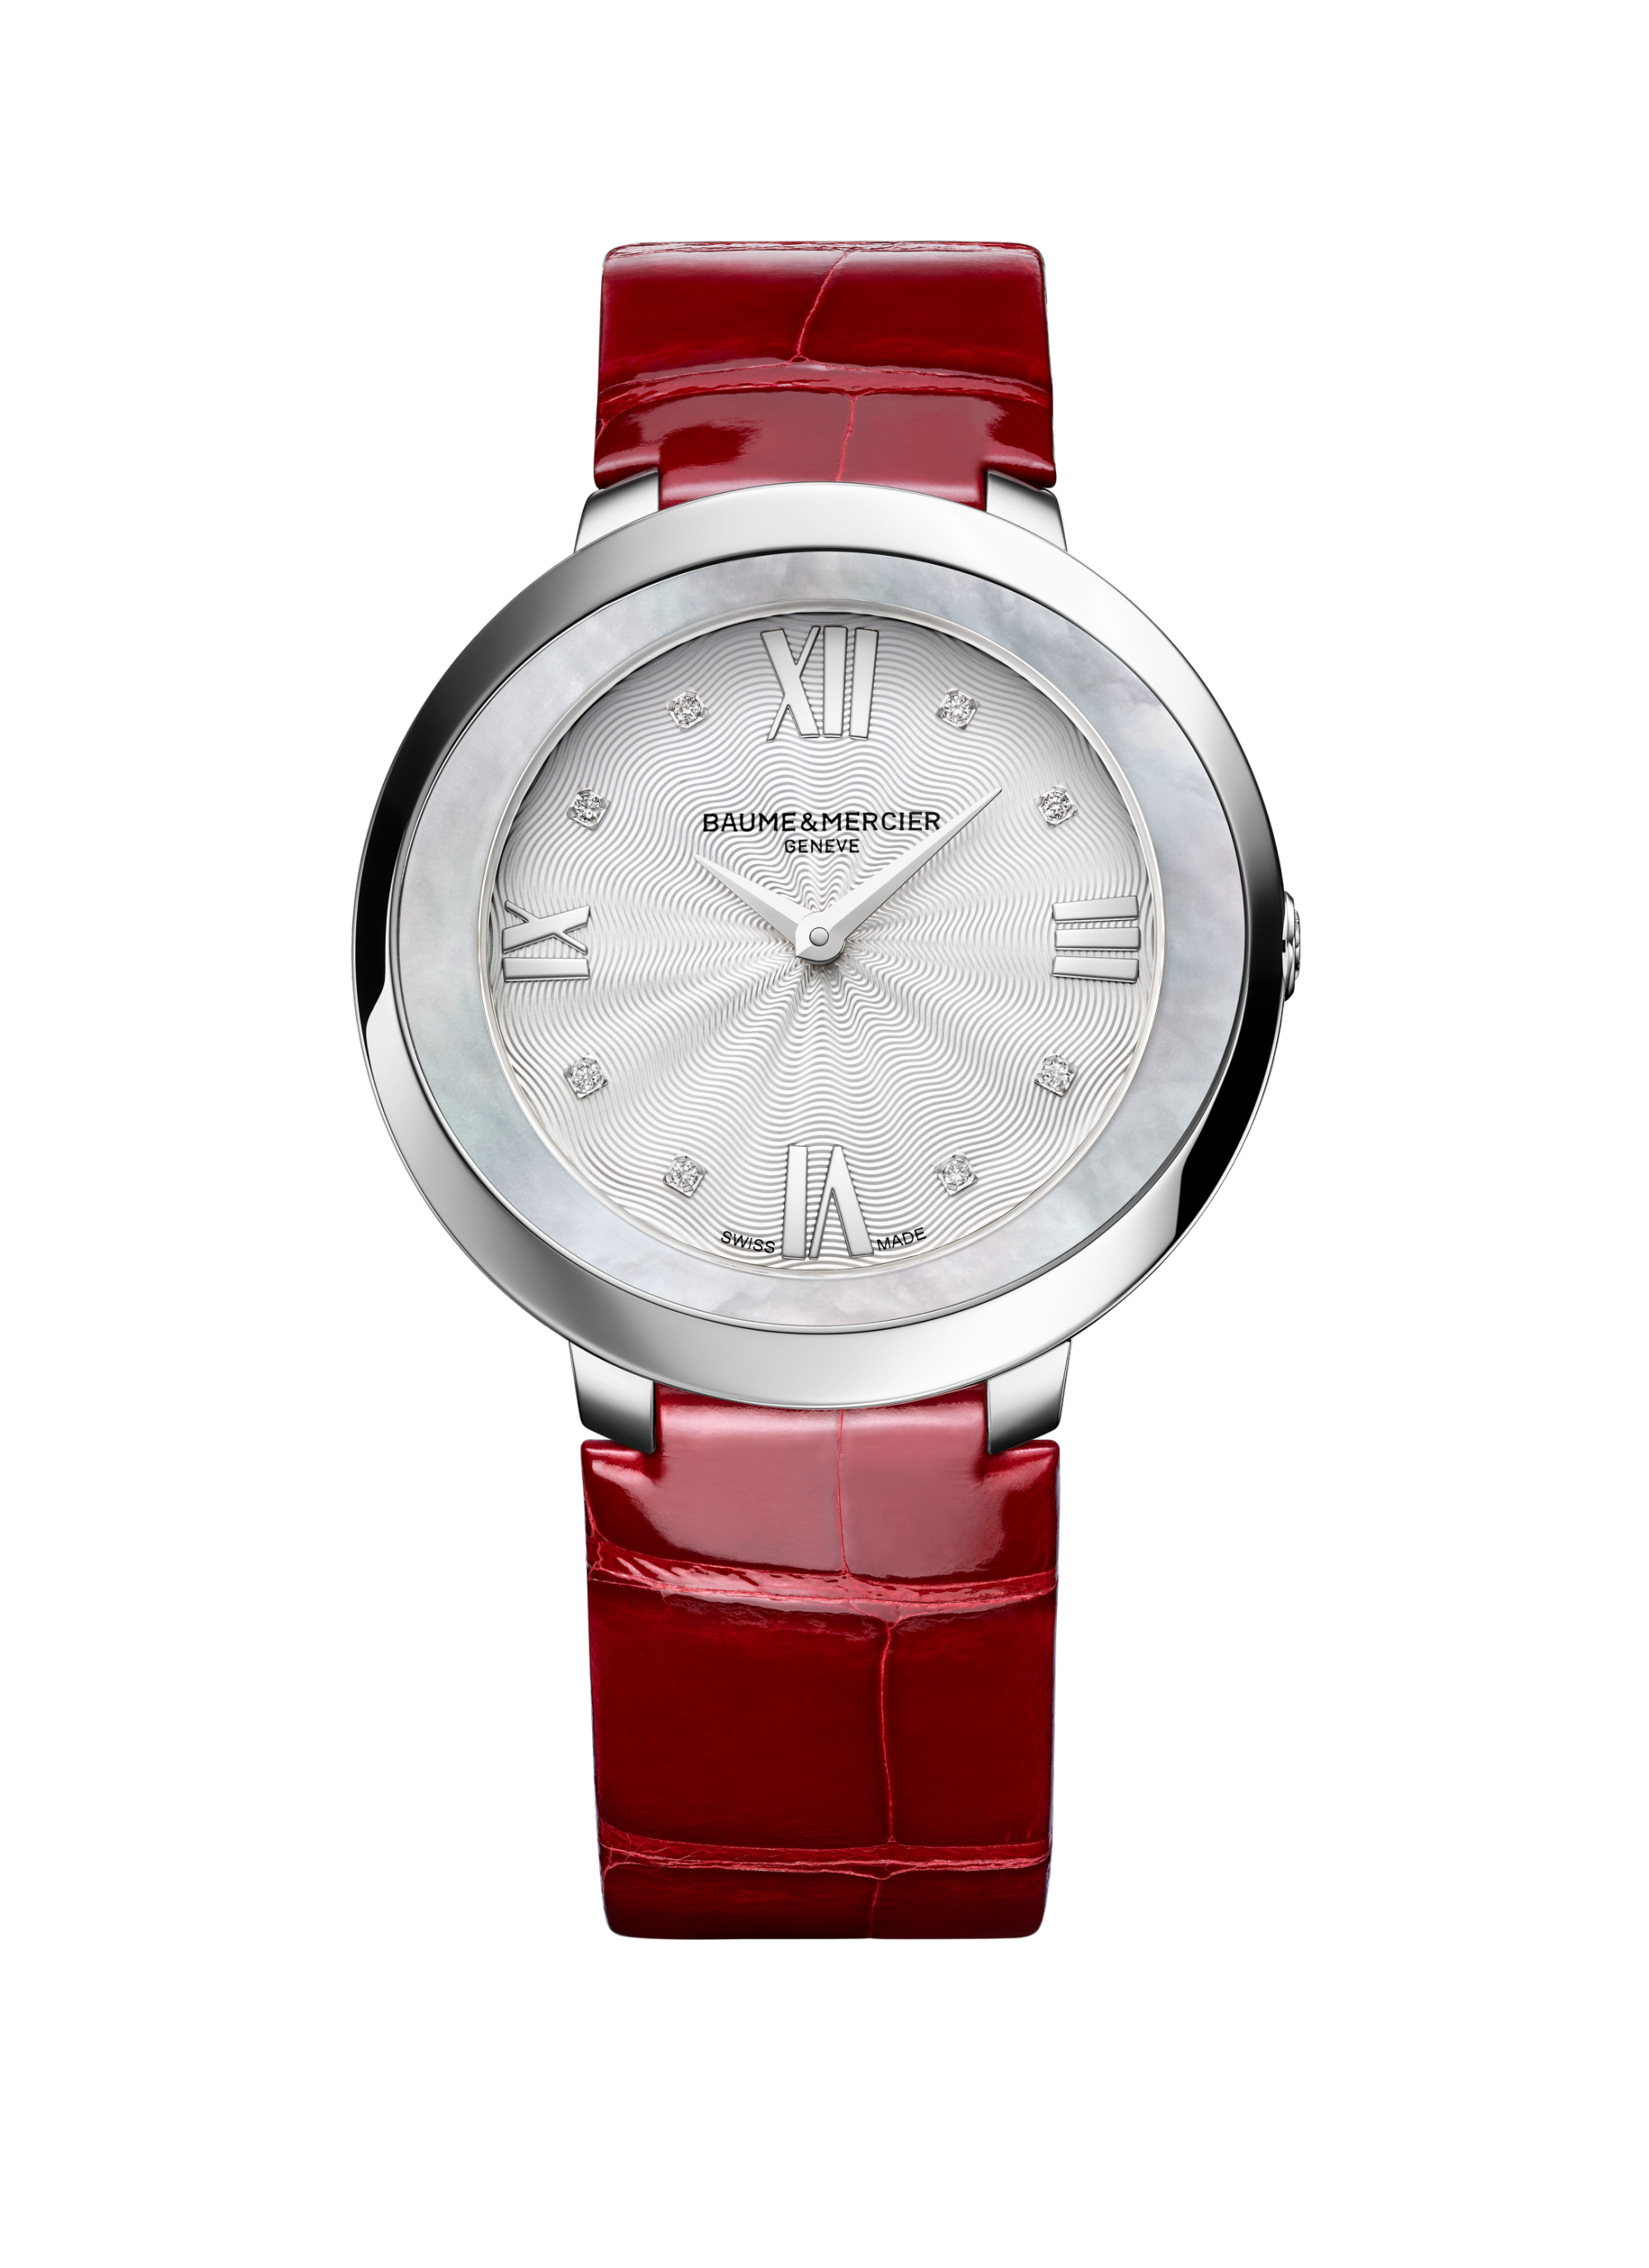 Promesse 10262 Watch for ladies | Check Prices on Baume & Mercier Front -